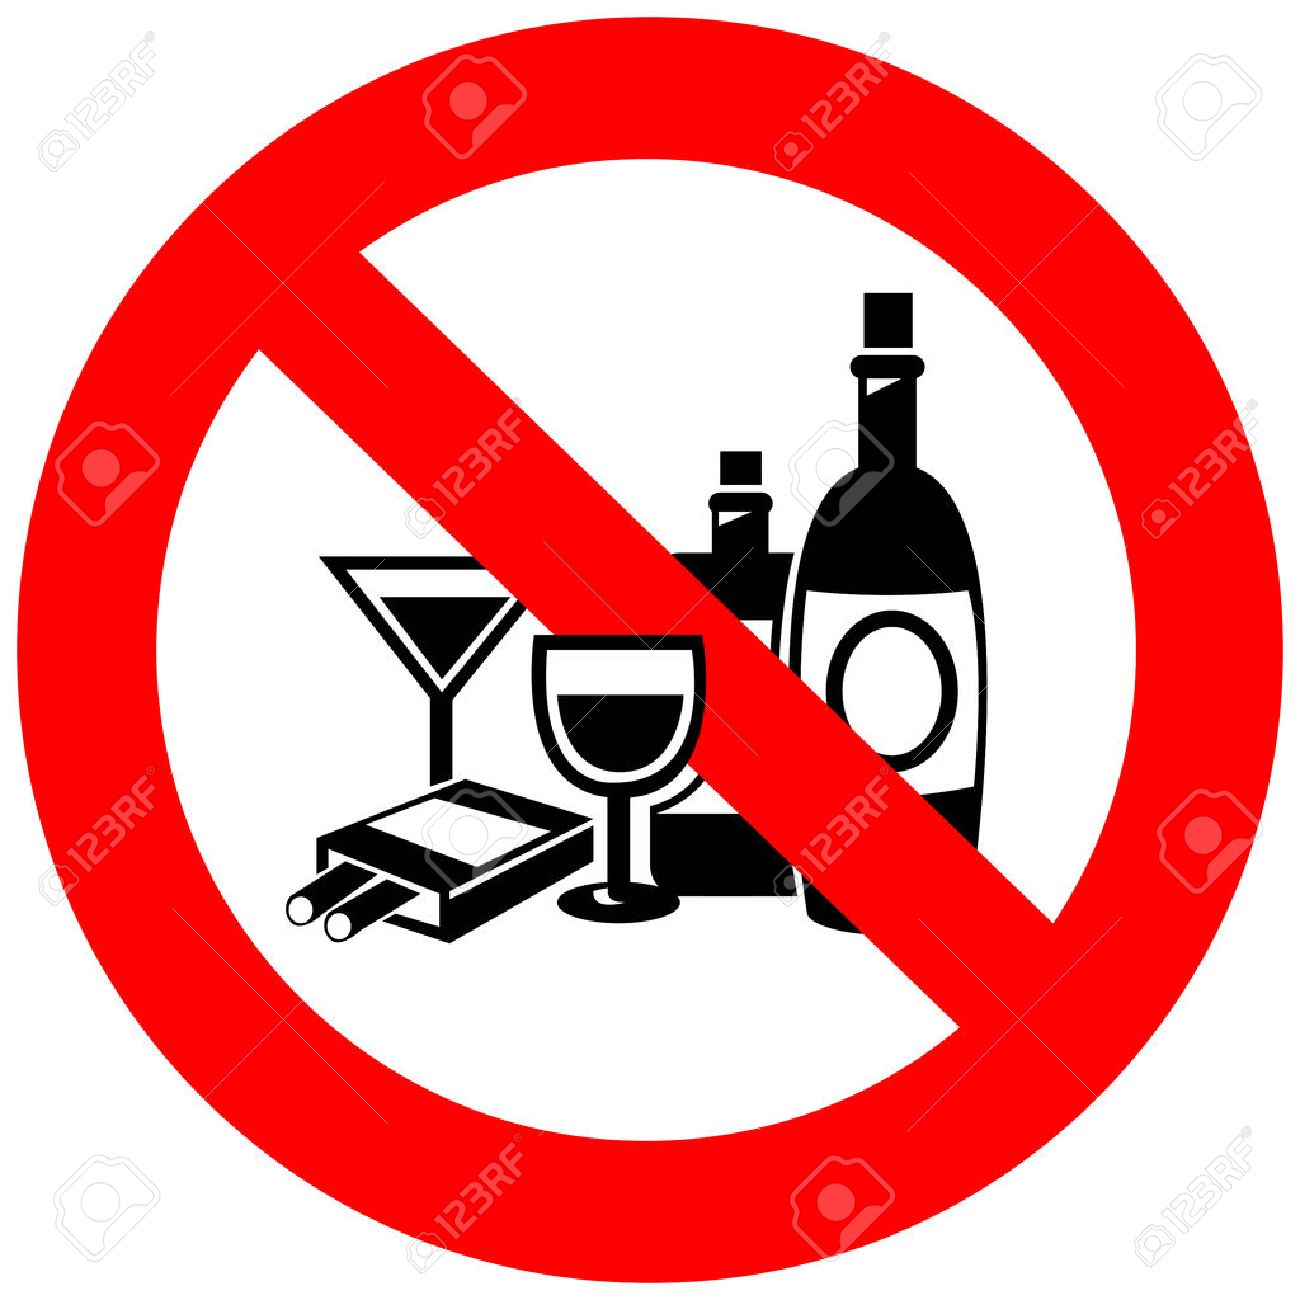 No alcohol and smoking sign, create by vector.